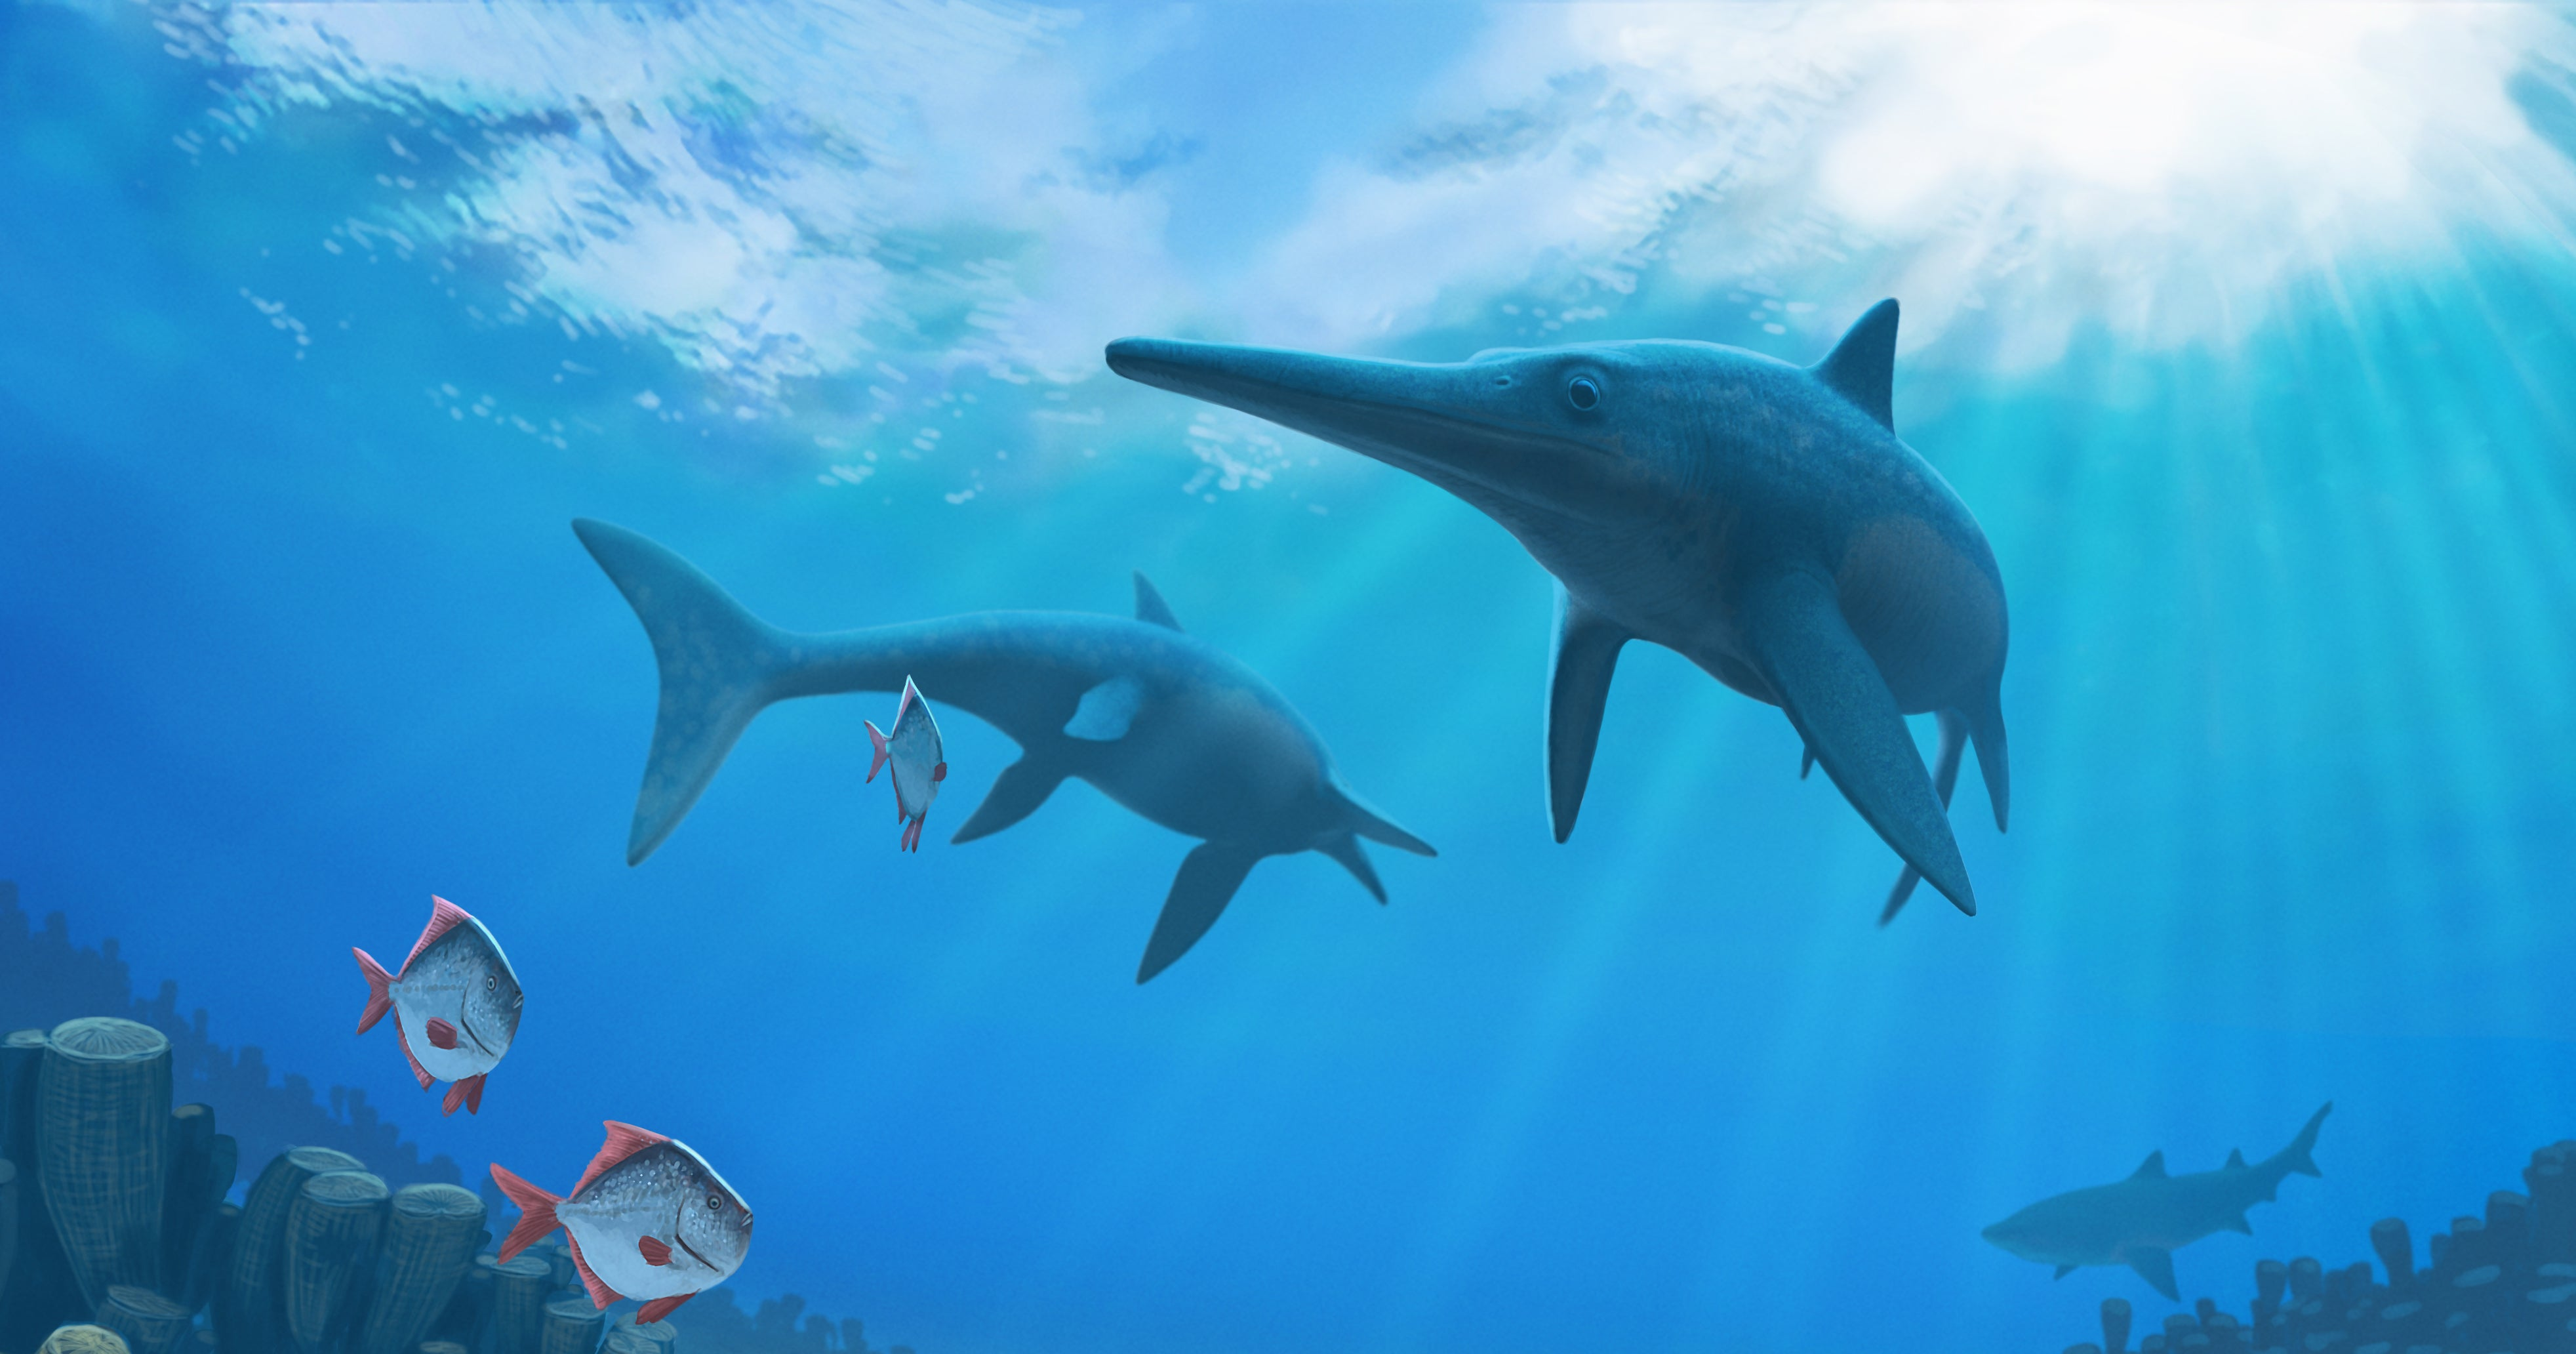 It Looks Like Climate Change Drove These Giant Marine Reptiles To Extinction